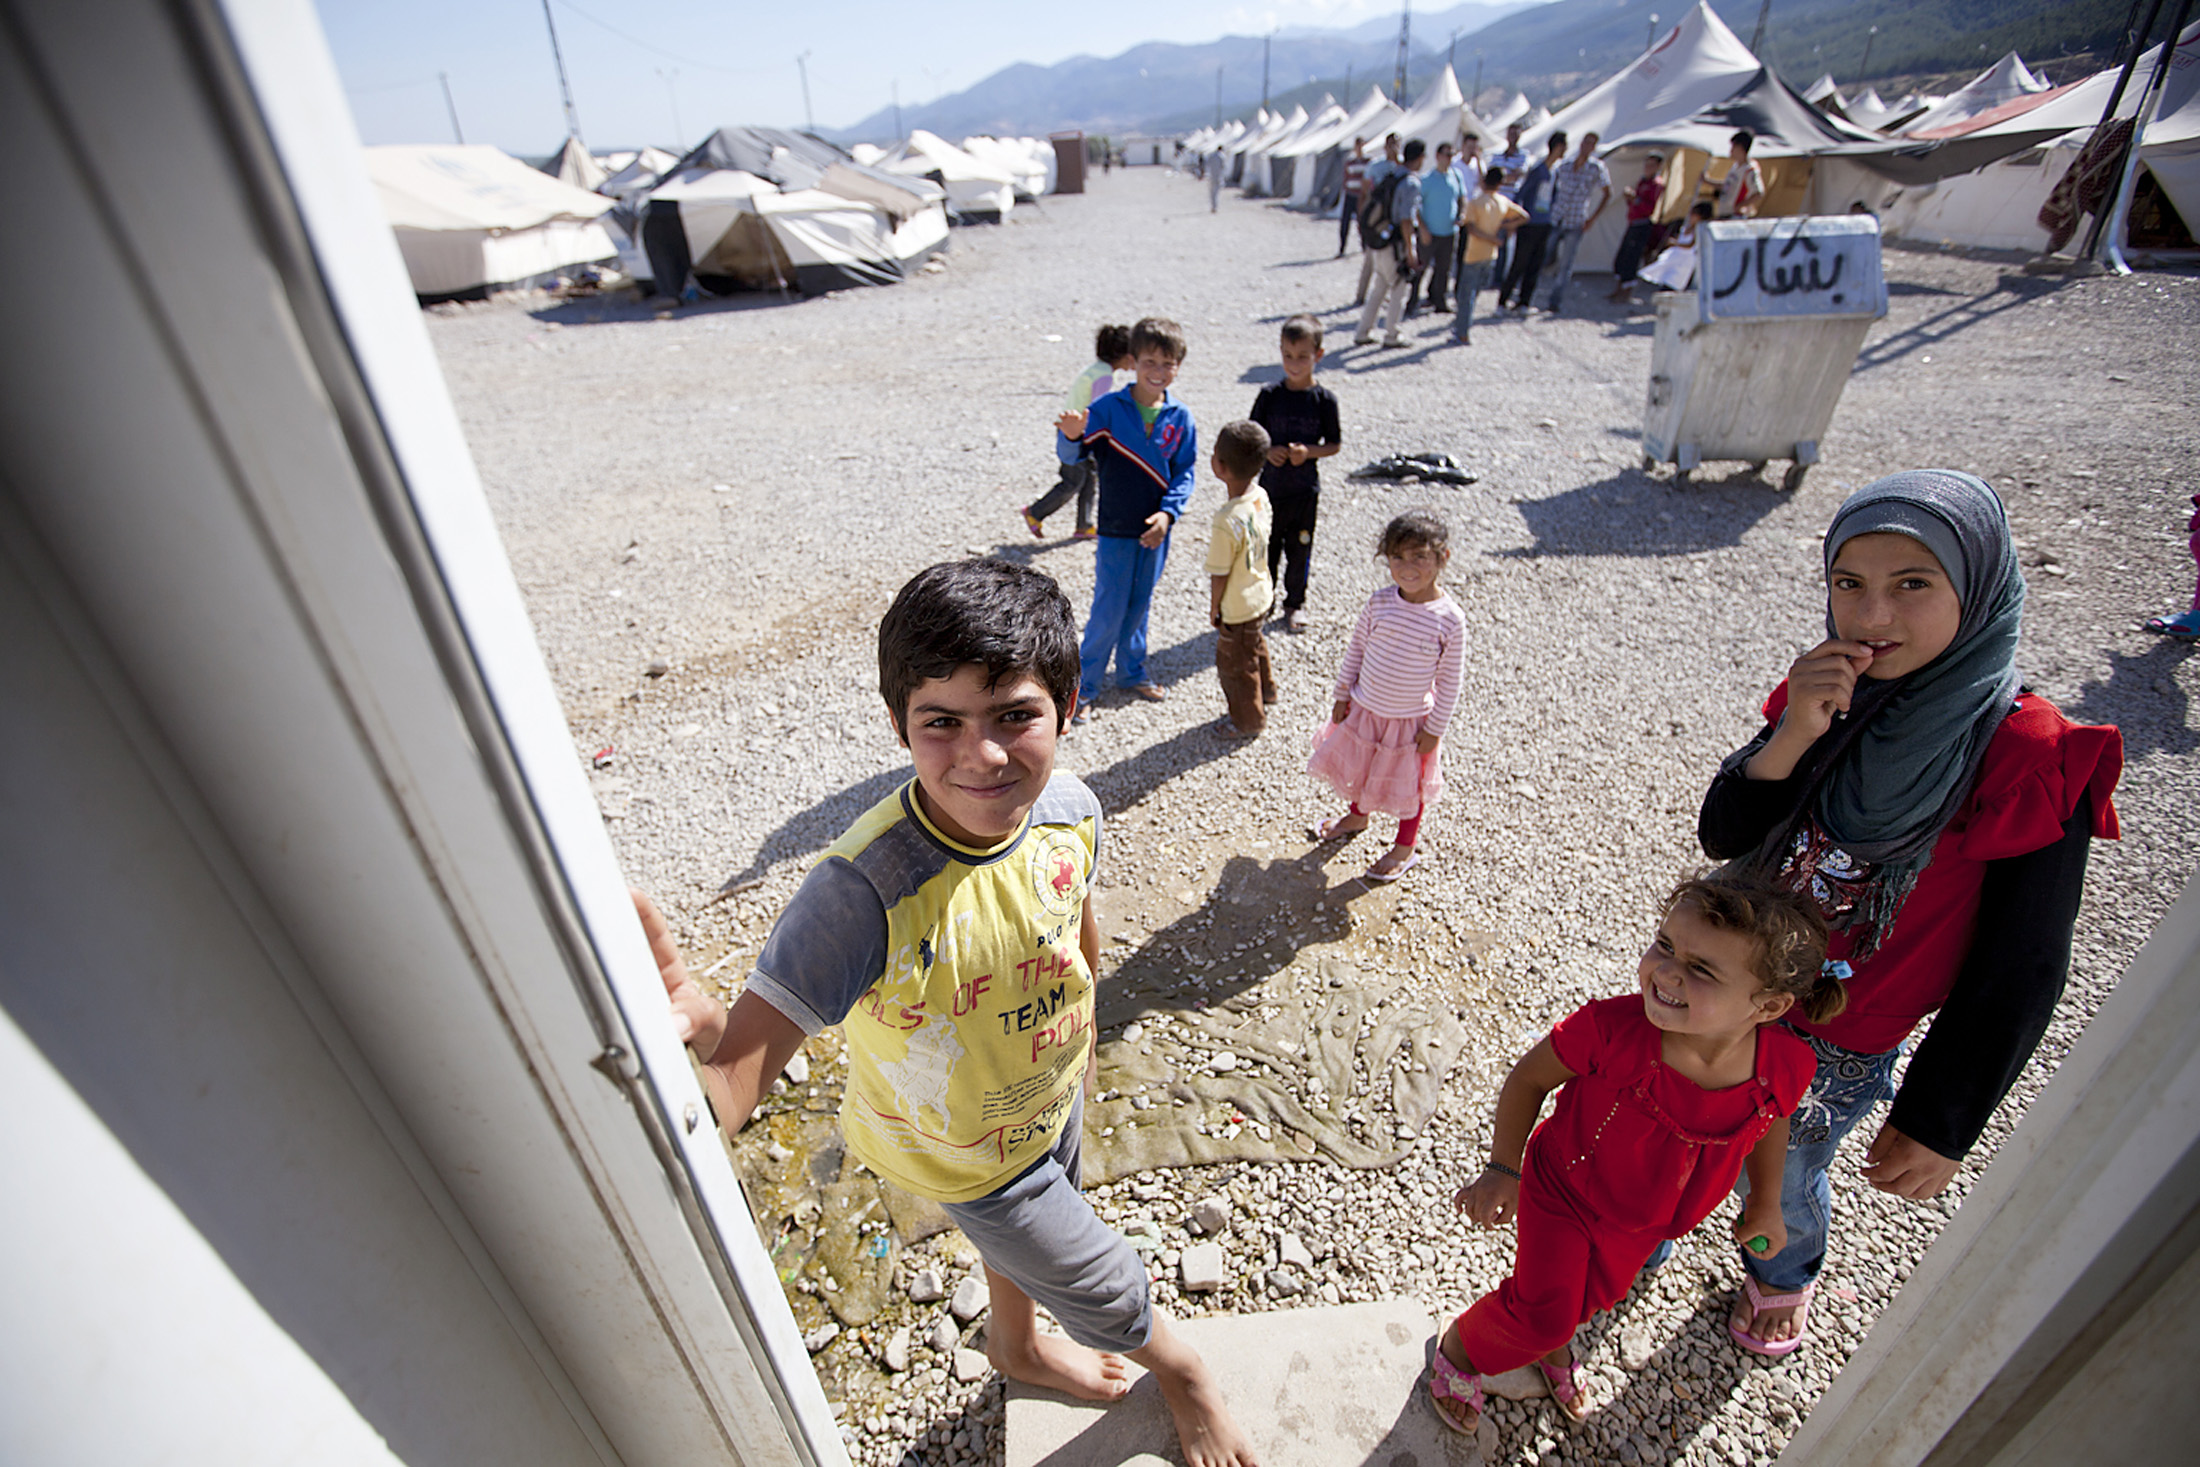 More than half of the refugees are children and teenagers (Islahiya camp, southern Turkey)